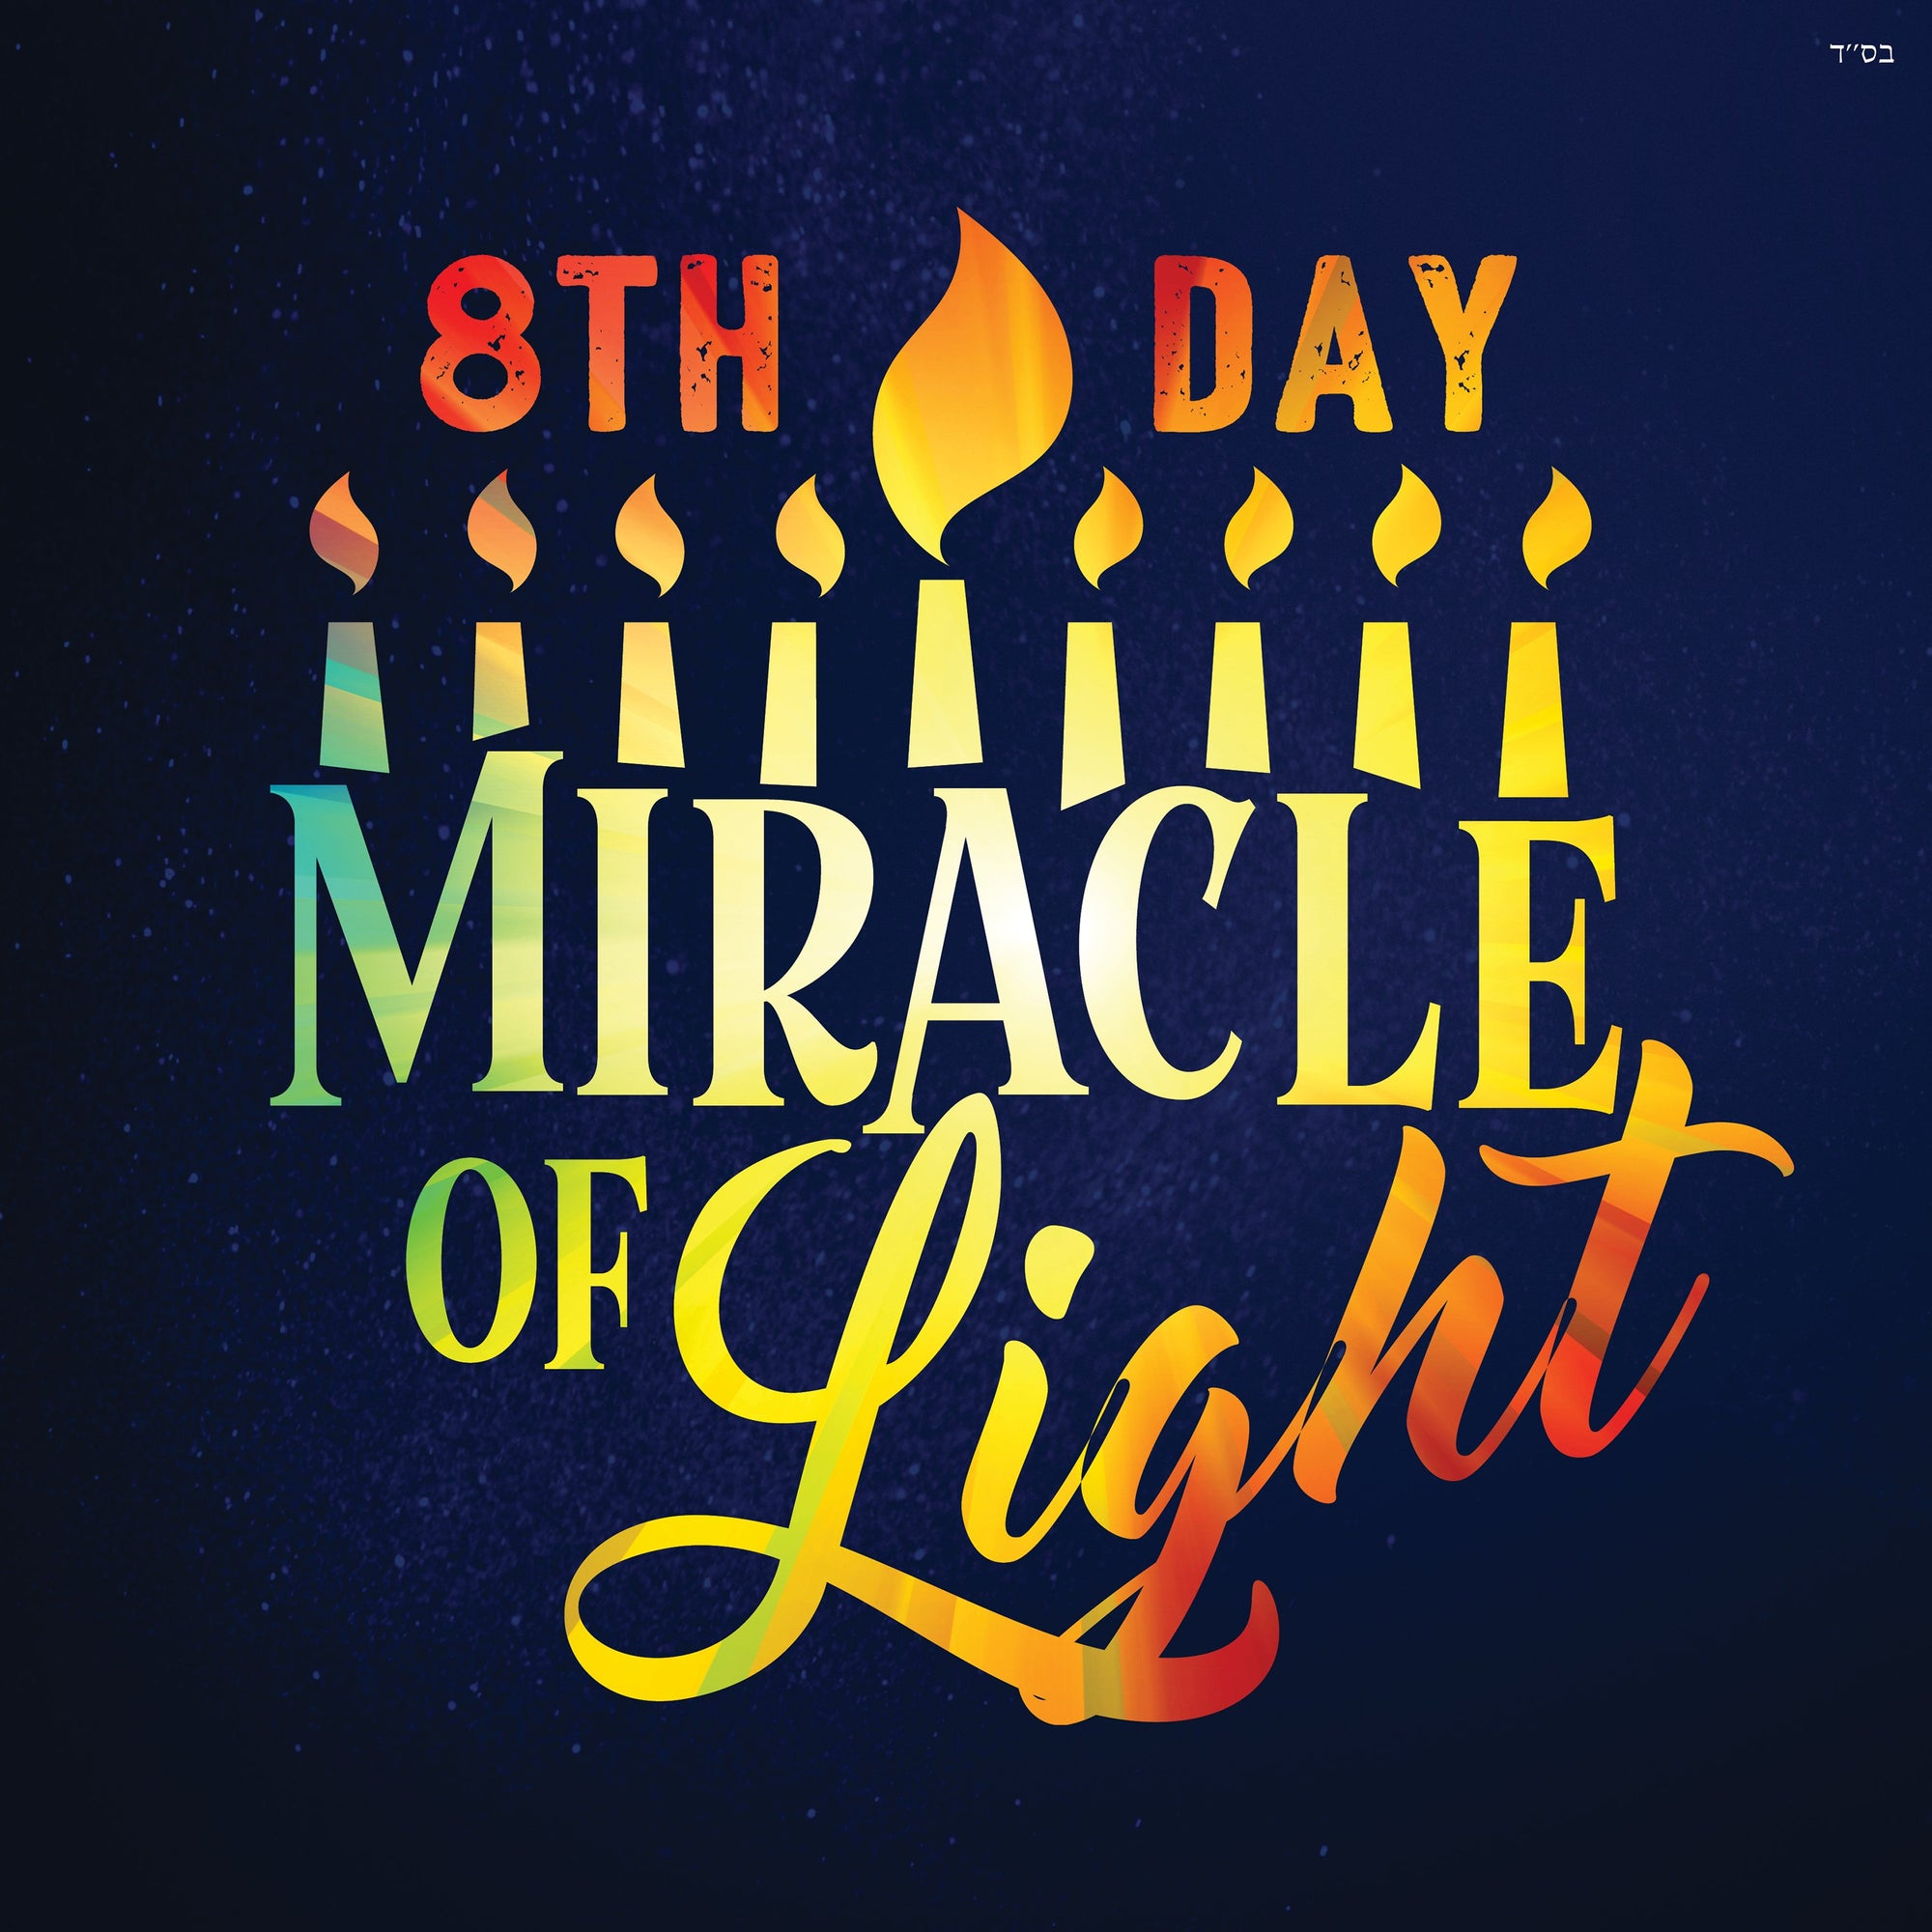 8th Day - Miracle Of Light (Single)